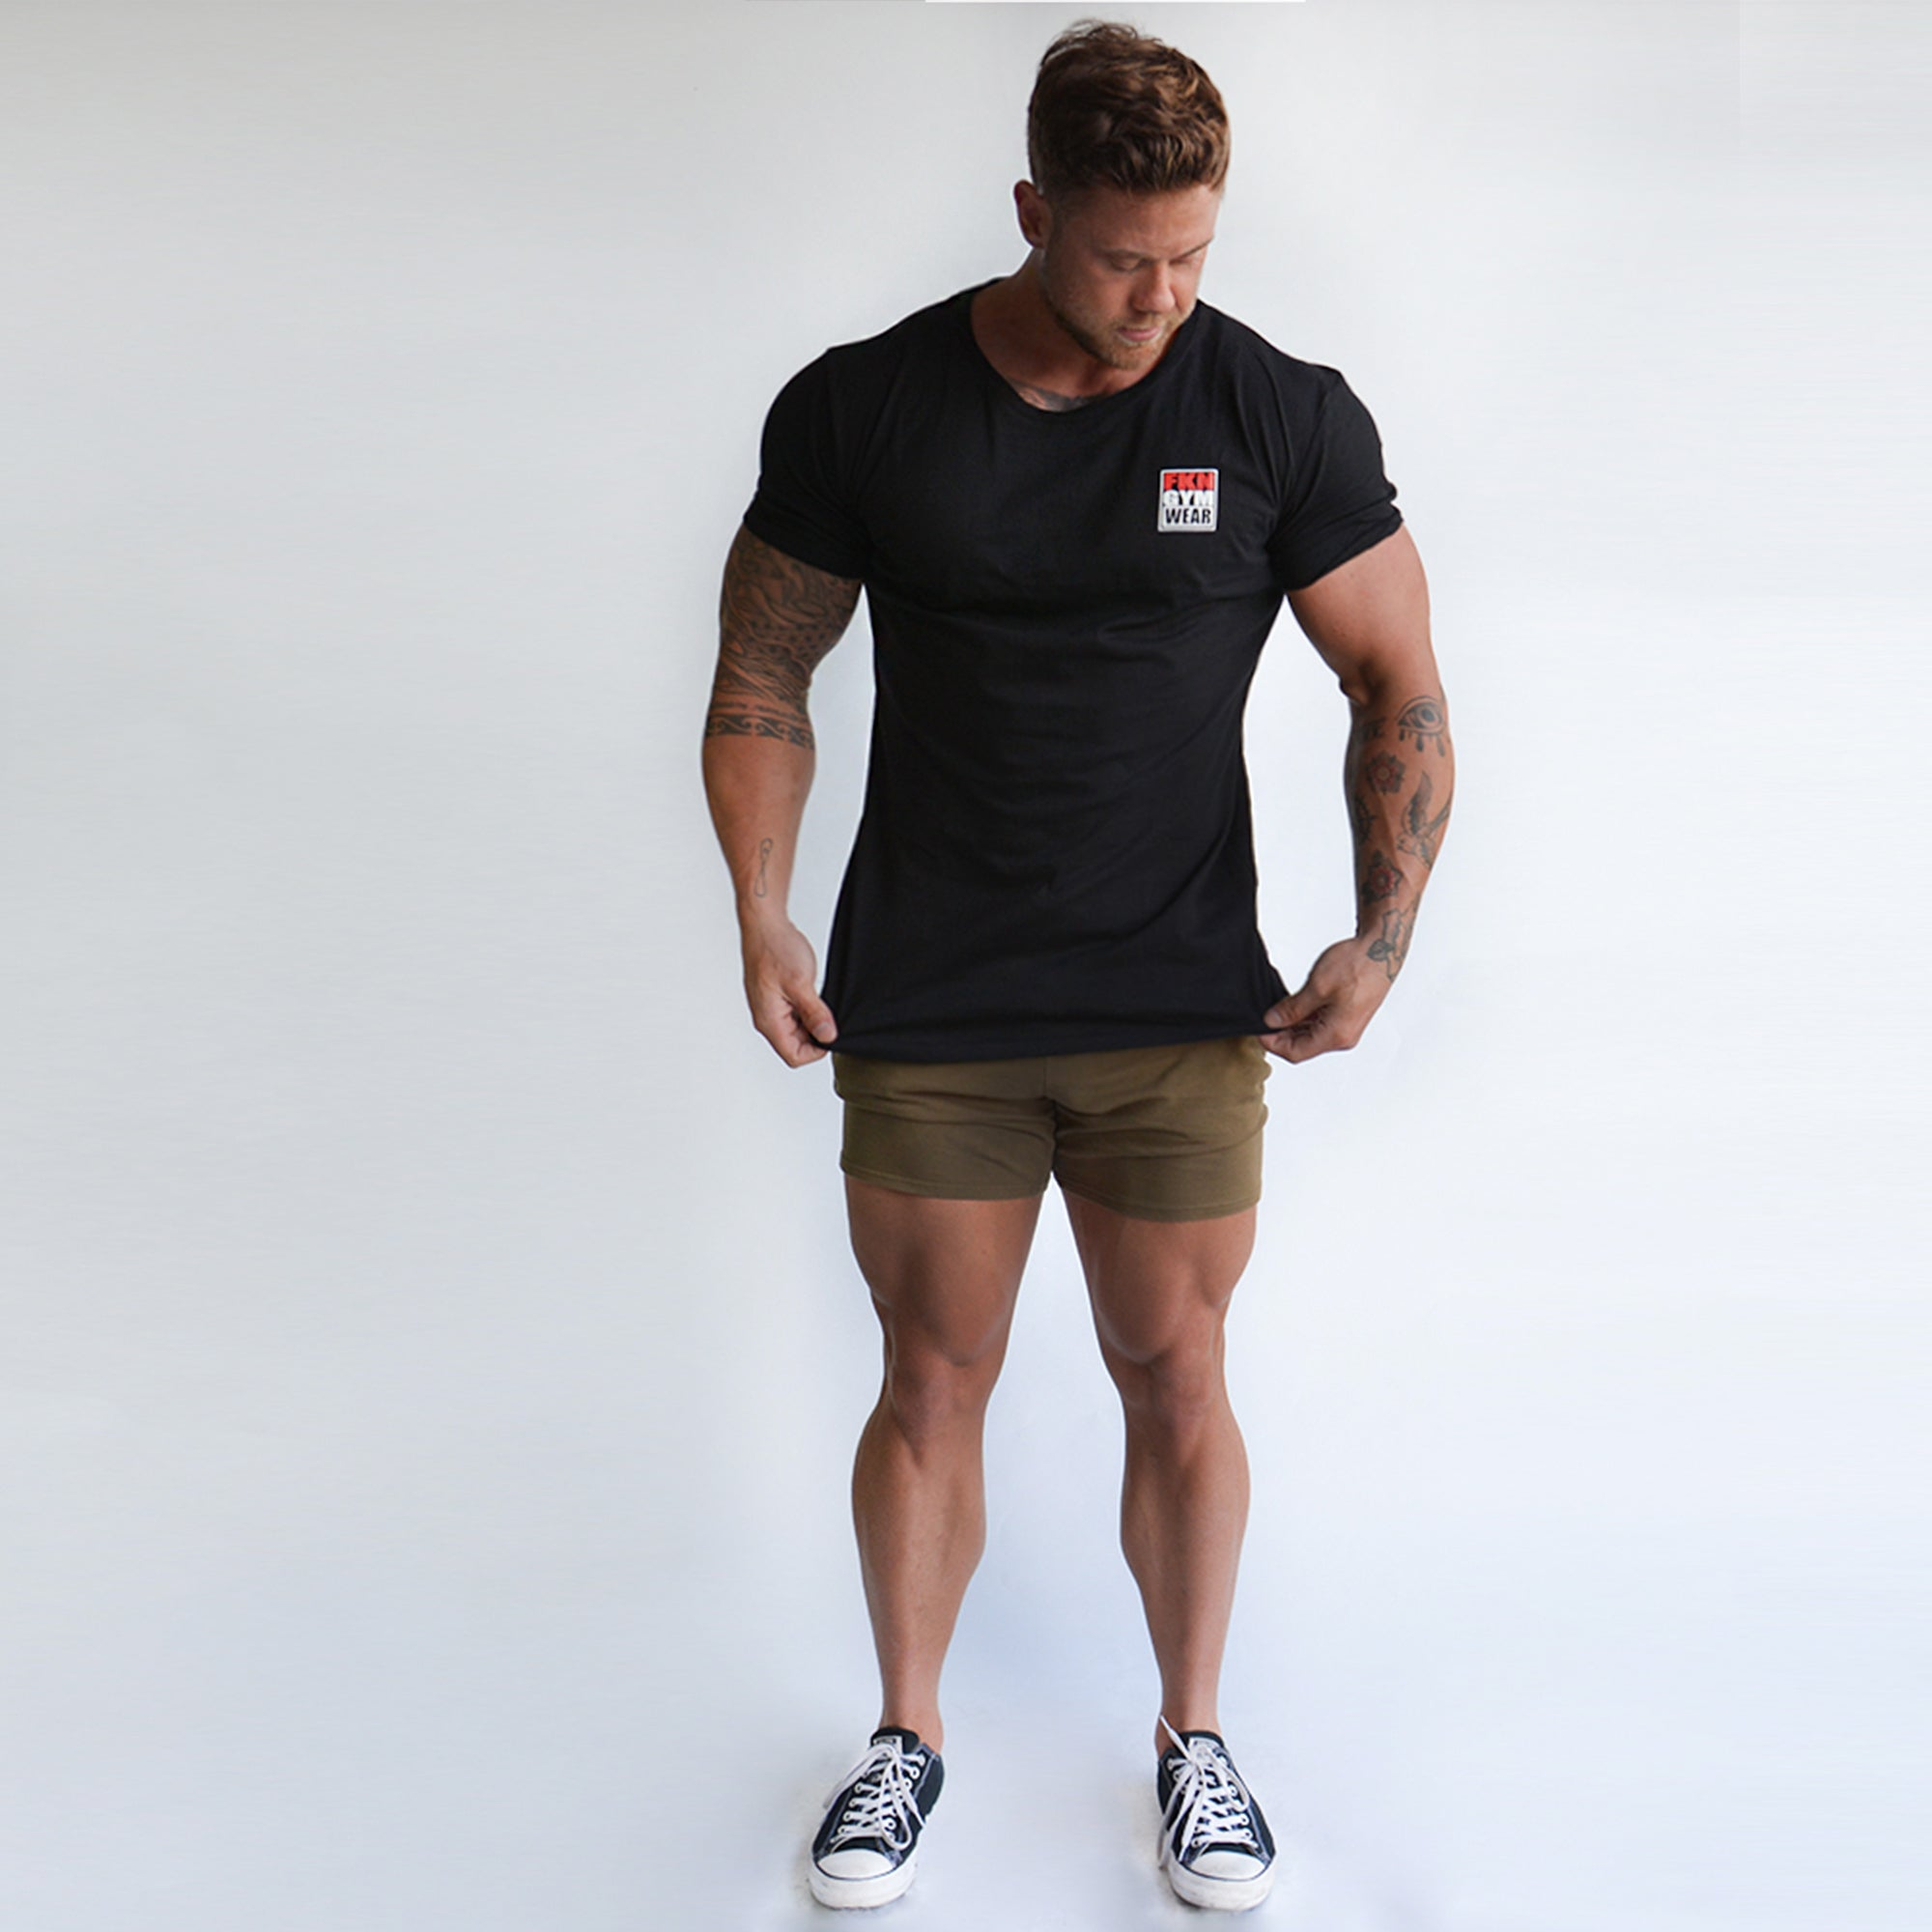 b01b7688296 ... mens-pocket-logo-tshirt-back-fkn-gym-wear- ...